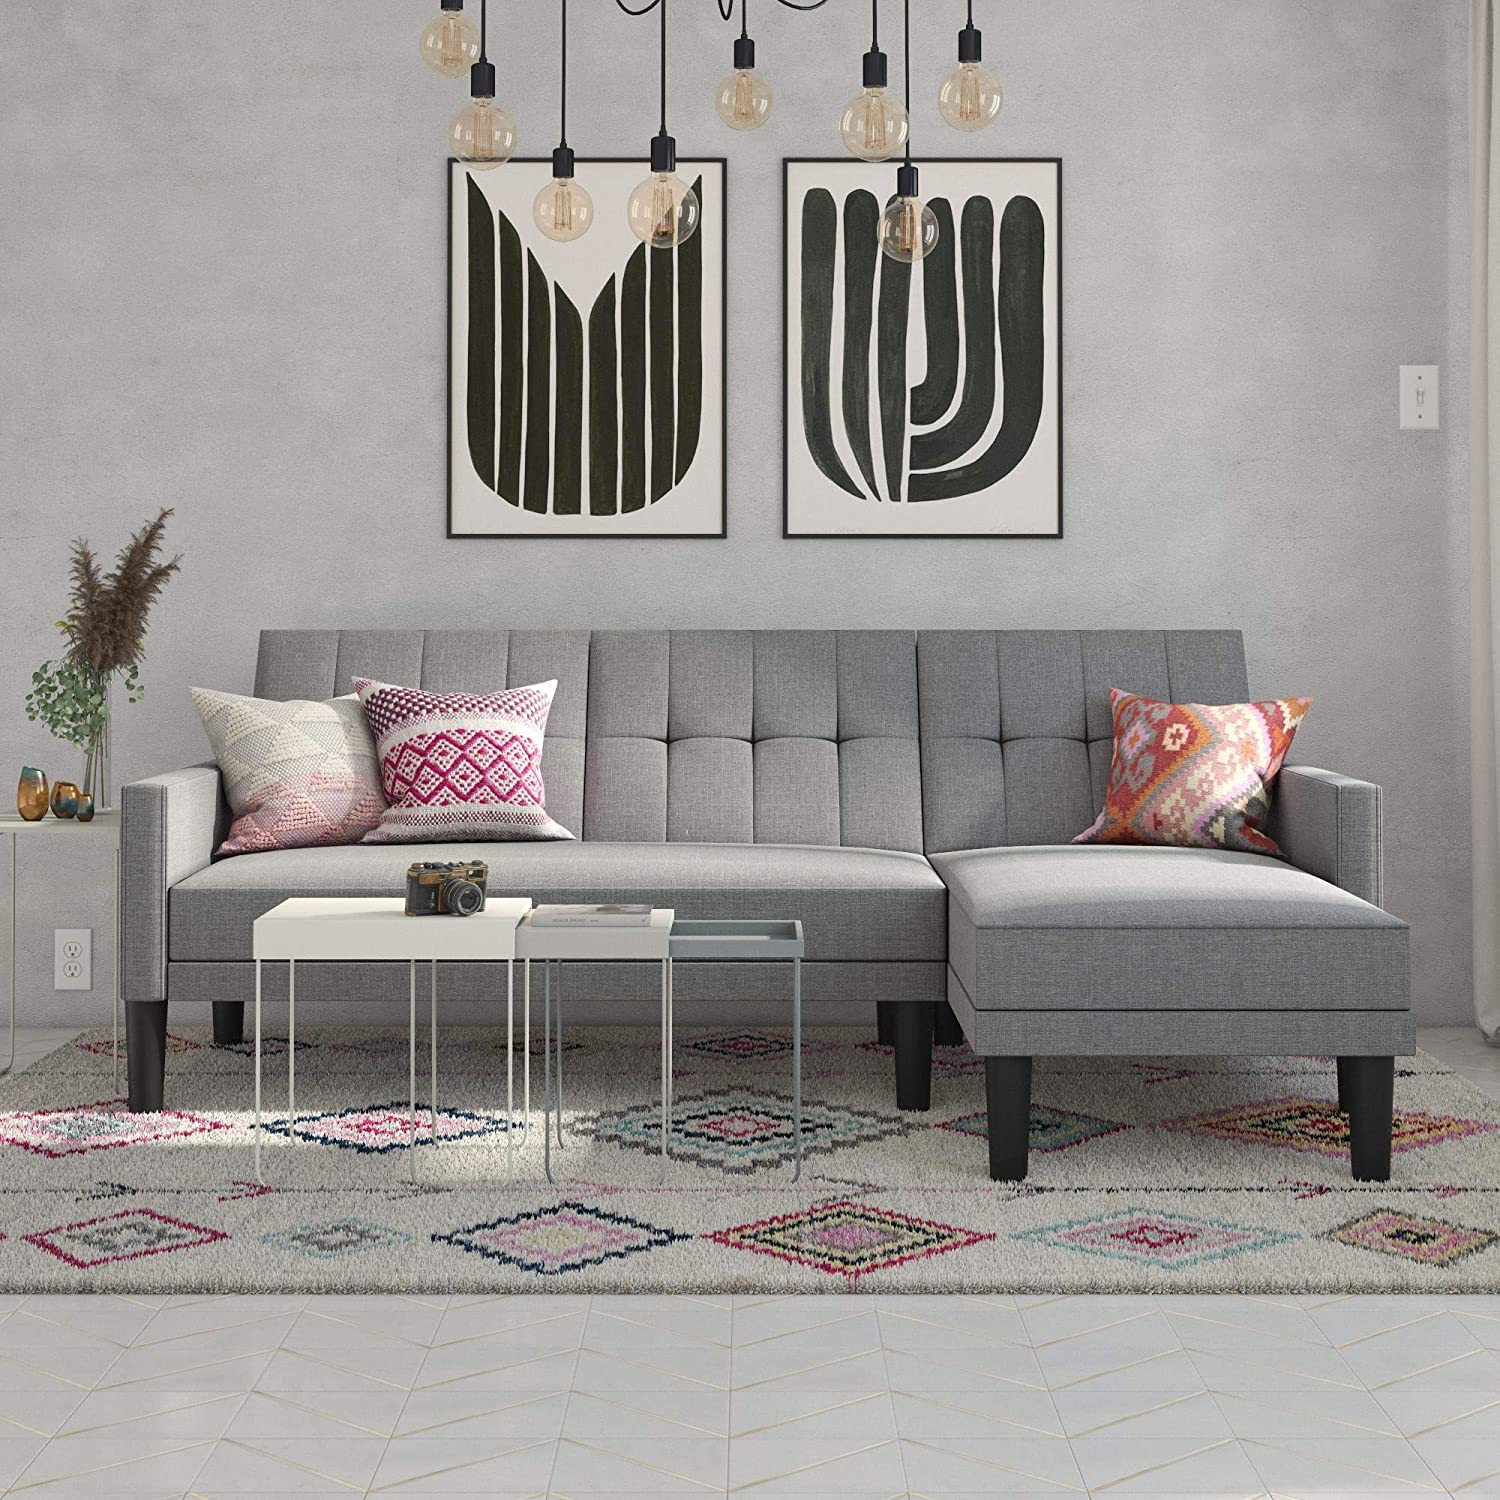 83-inch-small-sofa-sectional-tufted-back-grey-couch-with-chaise-modern-space-saving-furniture-for-apartments